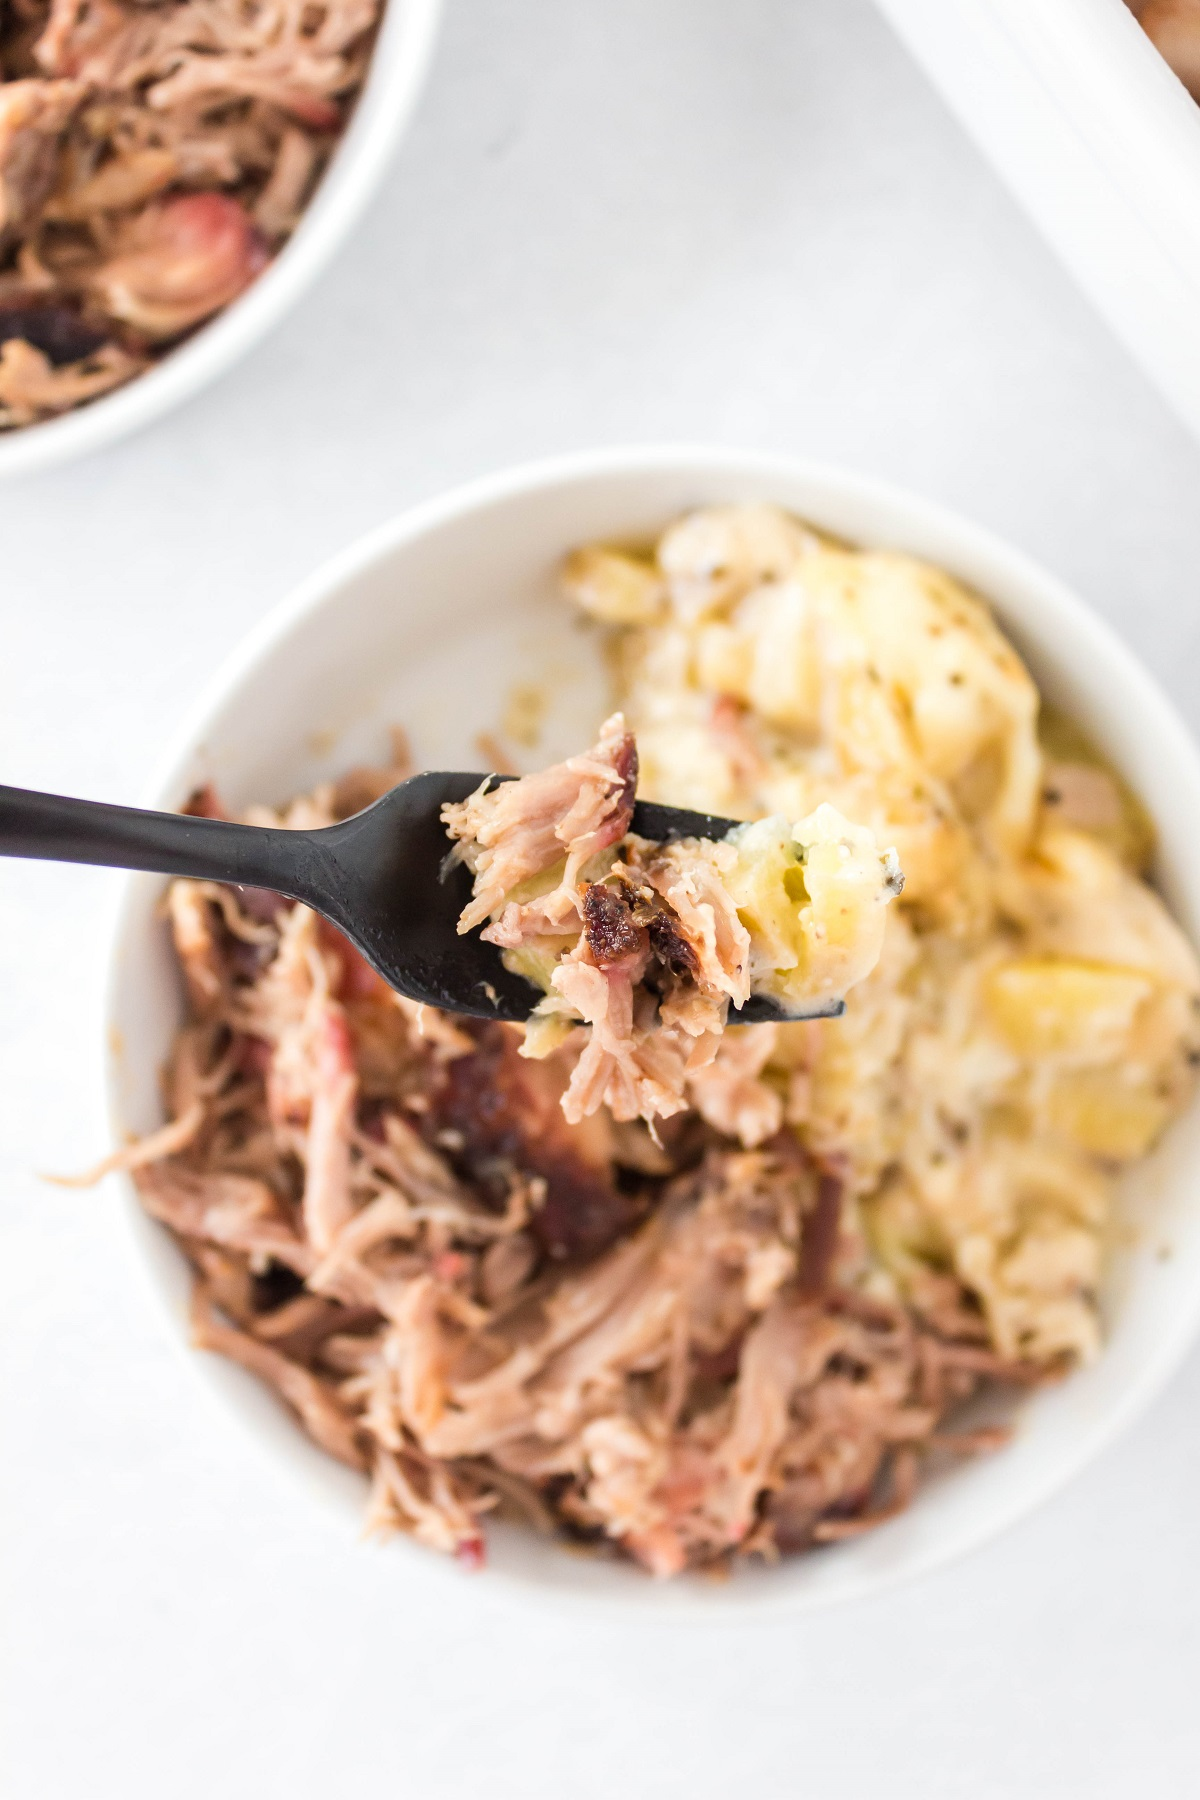 Fork full of pulled pork over a white bowl filled with pulled pork and mashed potatoes